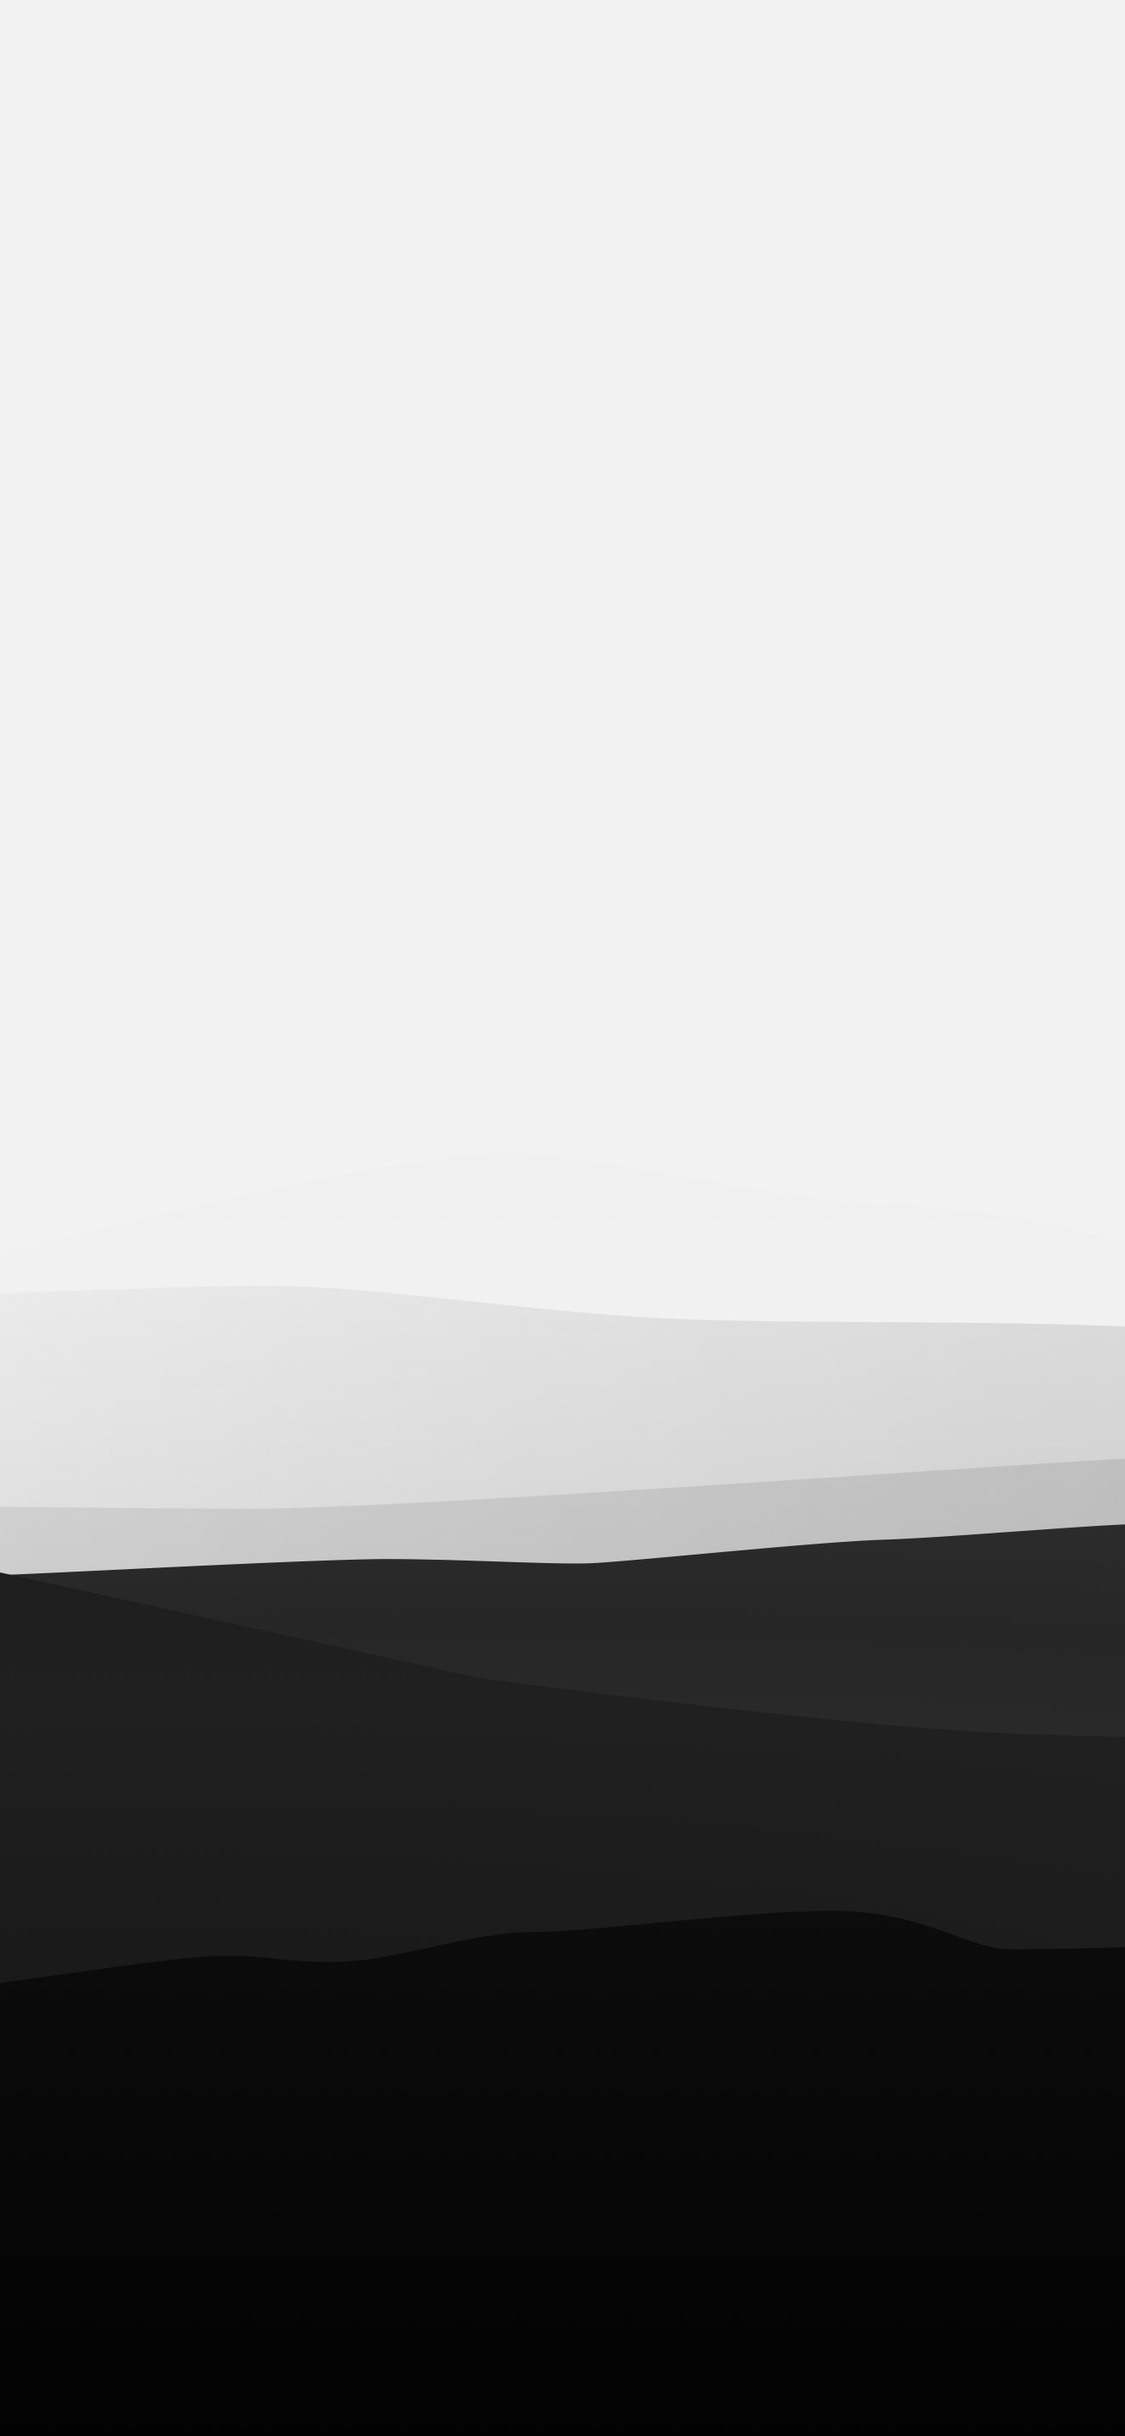 1125x2436 Minimalist Mountains Black And White Iphone Xs Iphone 10